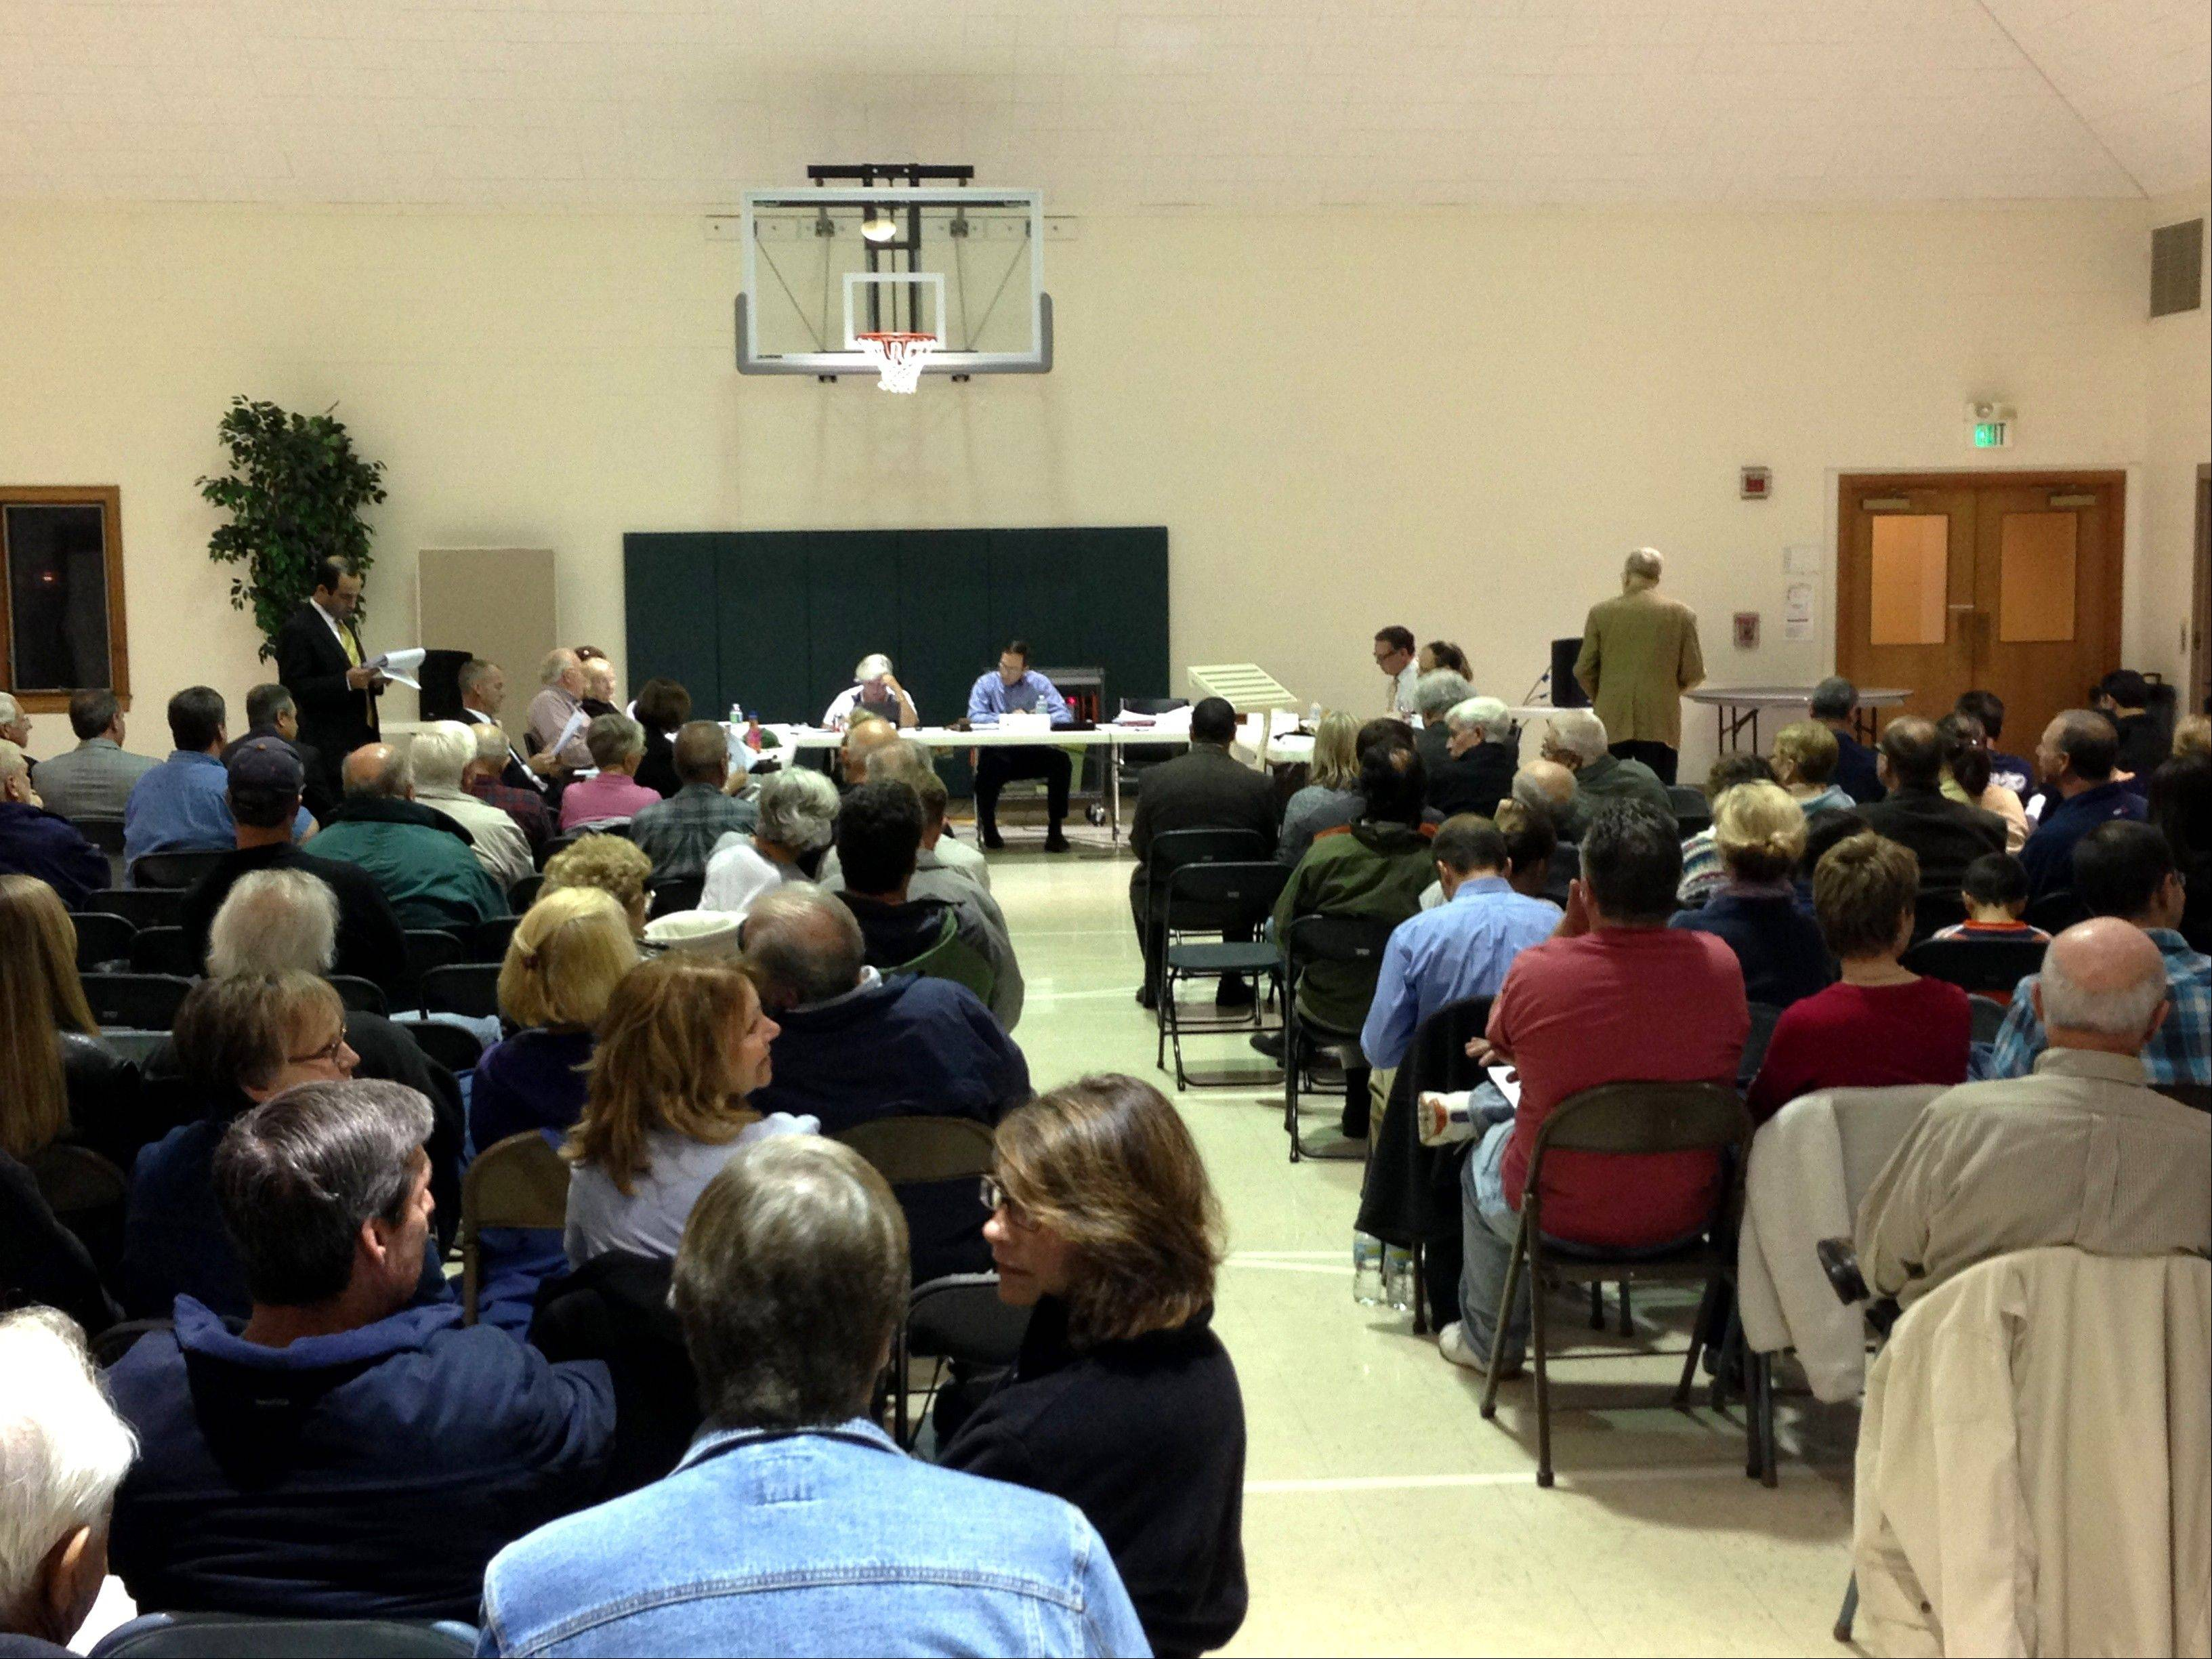 More than 100 Campton Hills residents filled asked a series of questions about a proposed drug and alcohol treatment facility Monday night. Residents made it clear they don't think the facility would be a positive addition to the community.